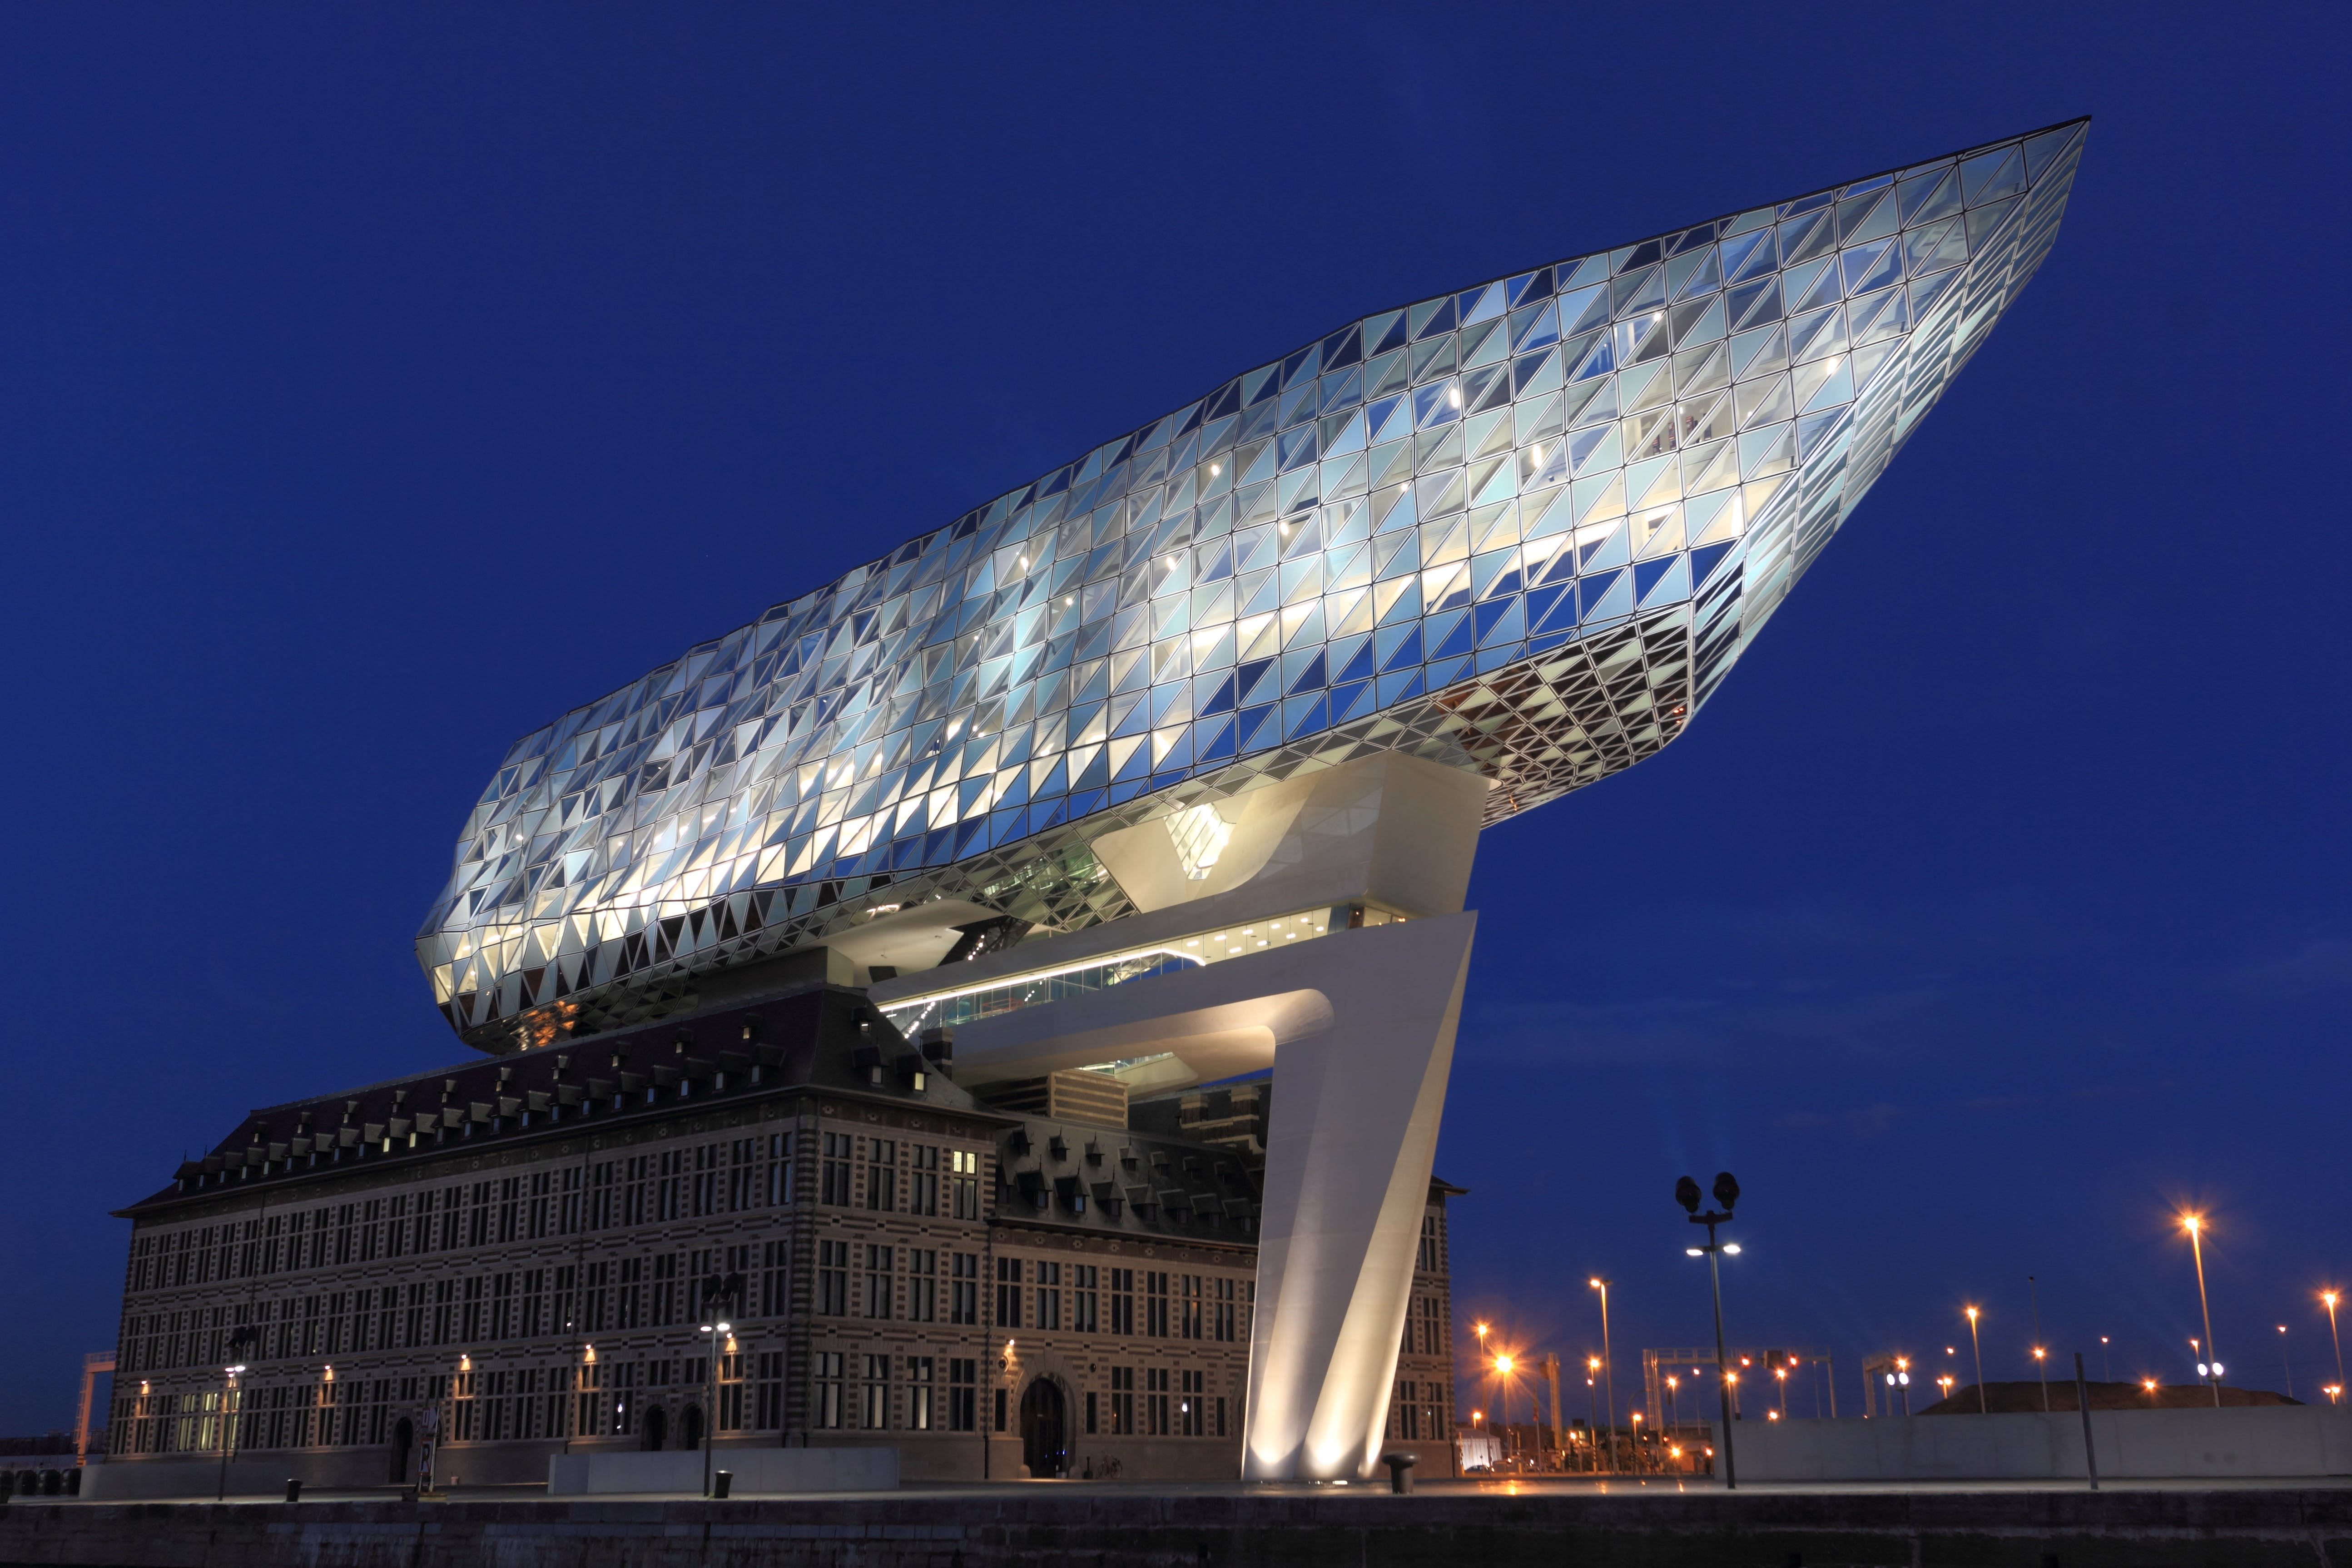 Low Angle Photo of Lighted Glass Building